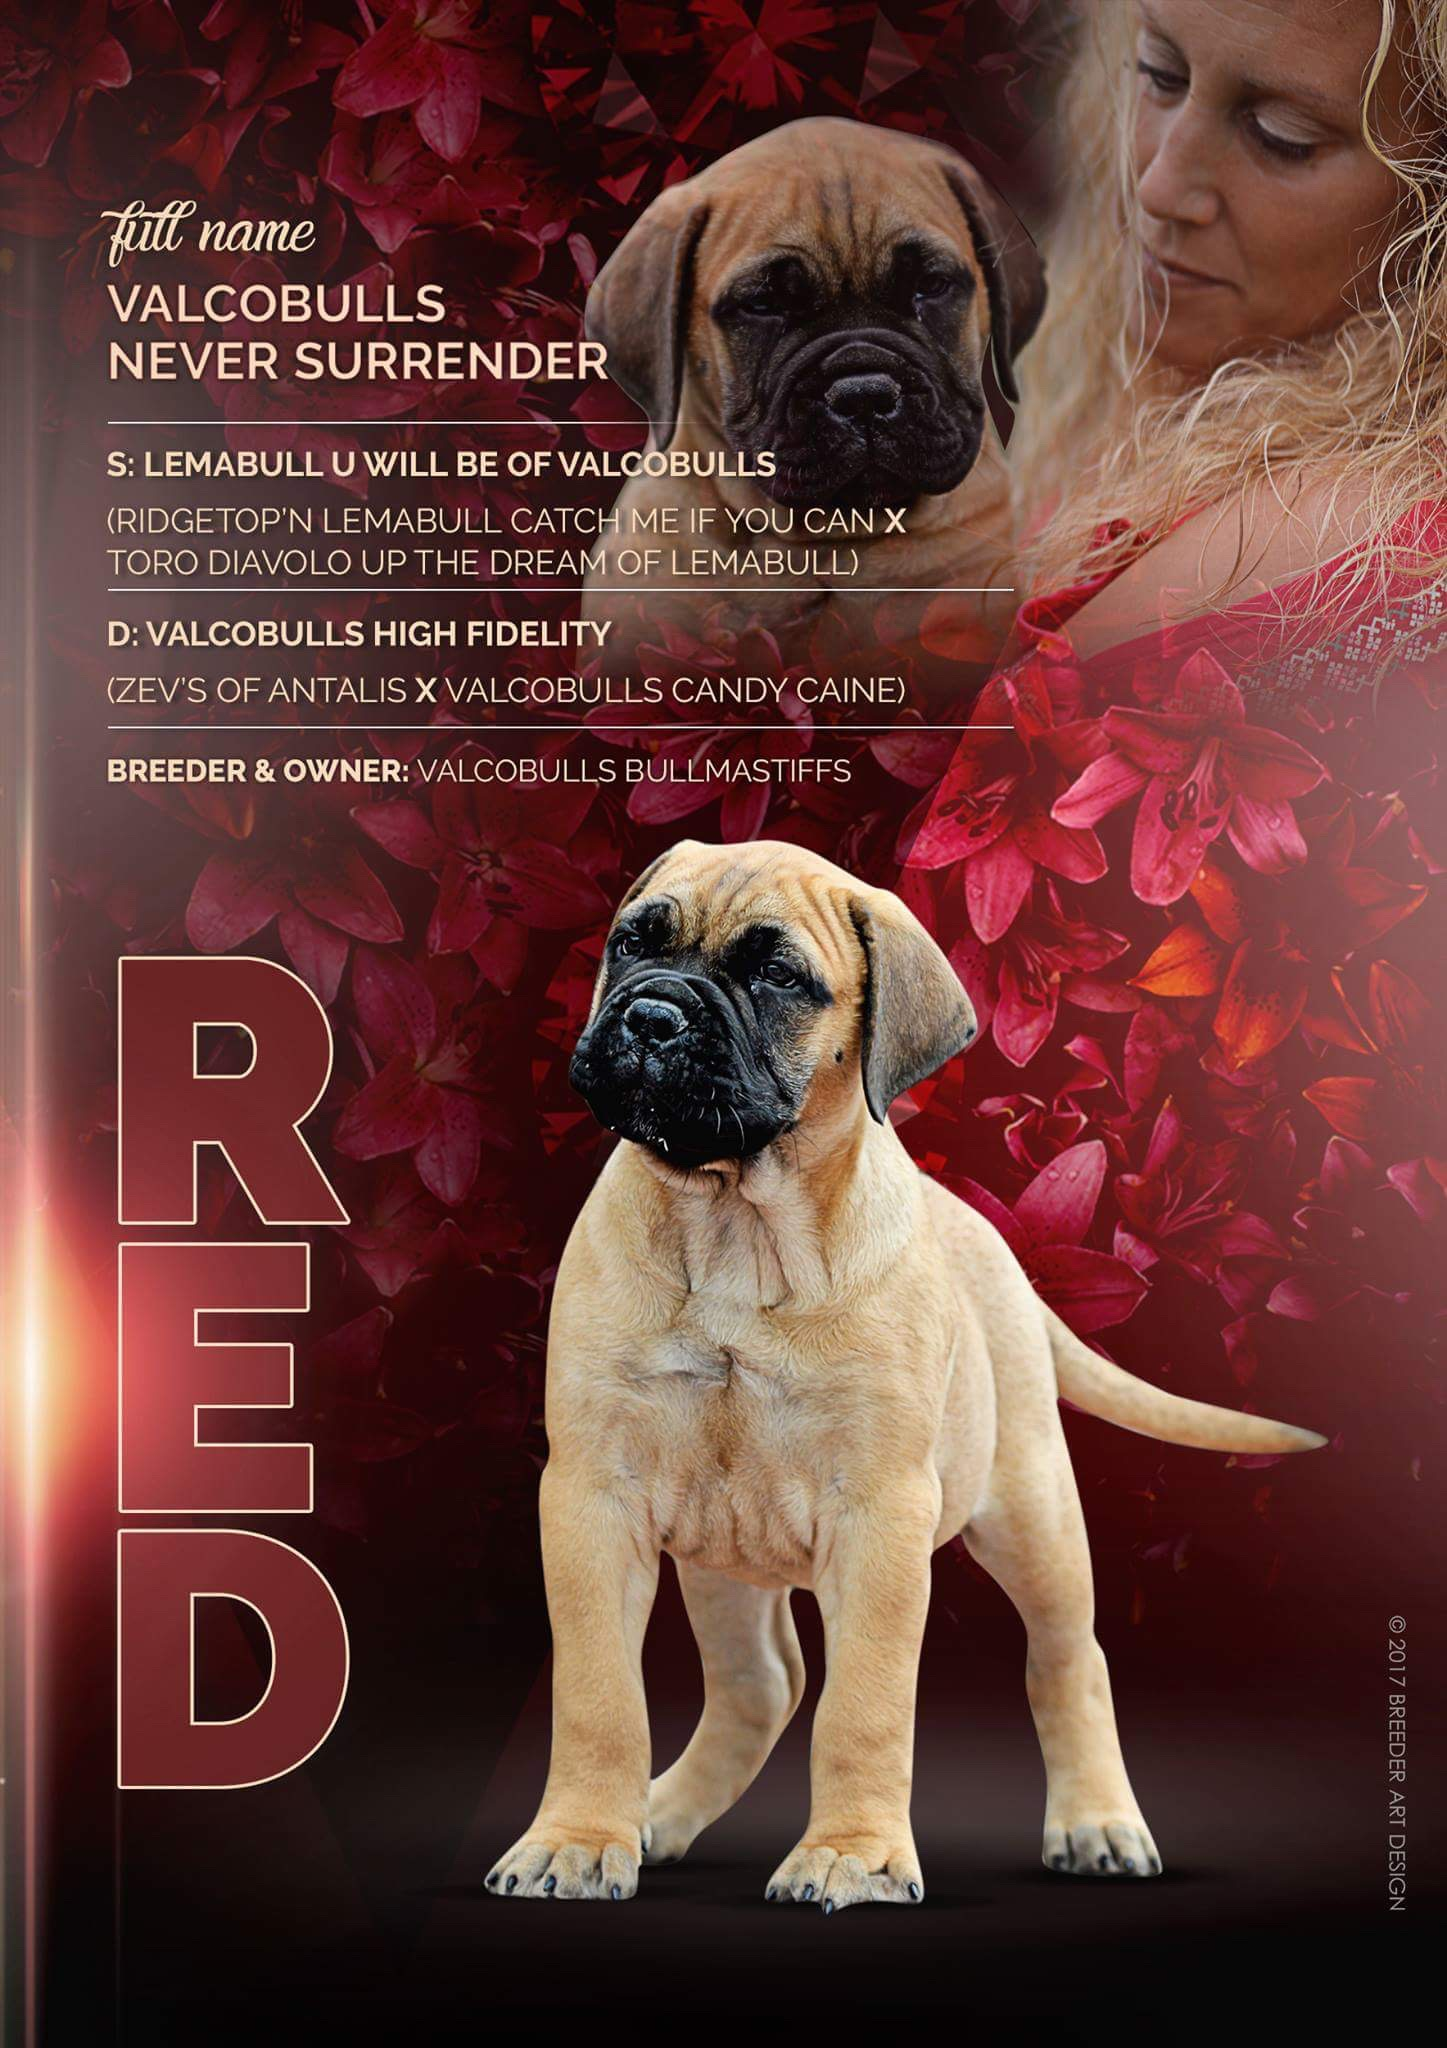 Valcobulls never surrender Bullmastiff